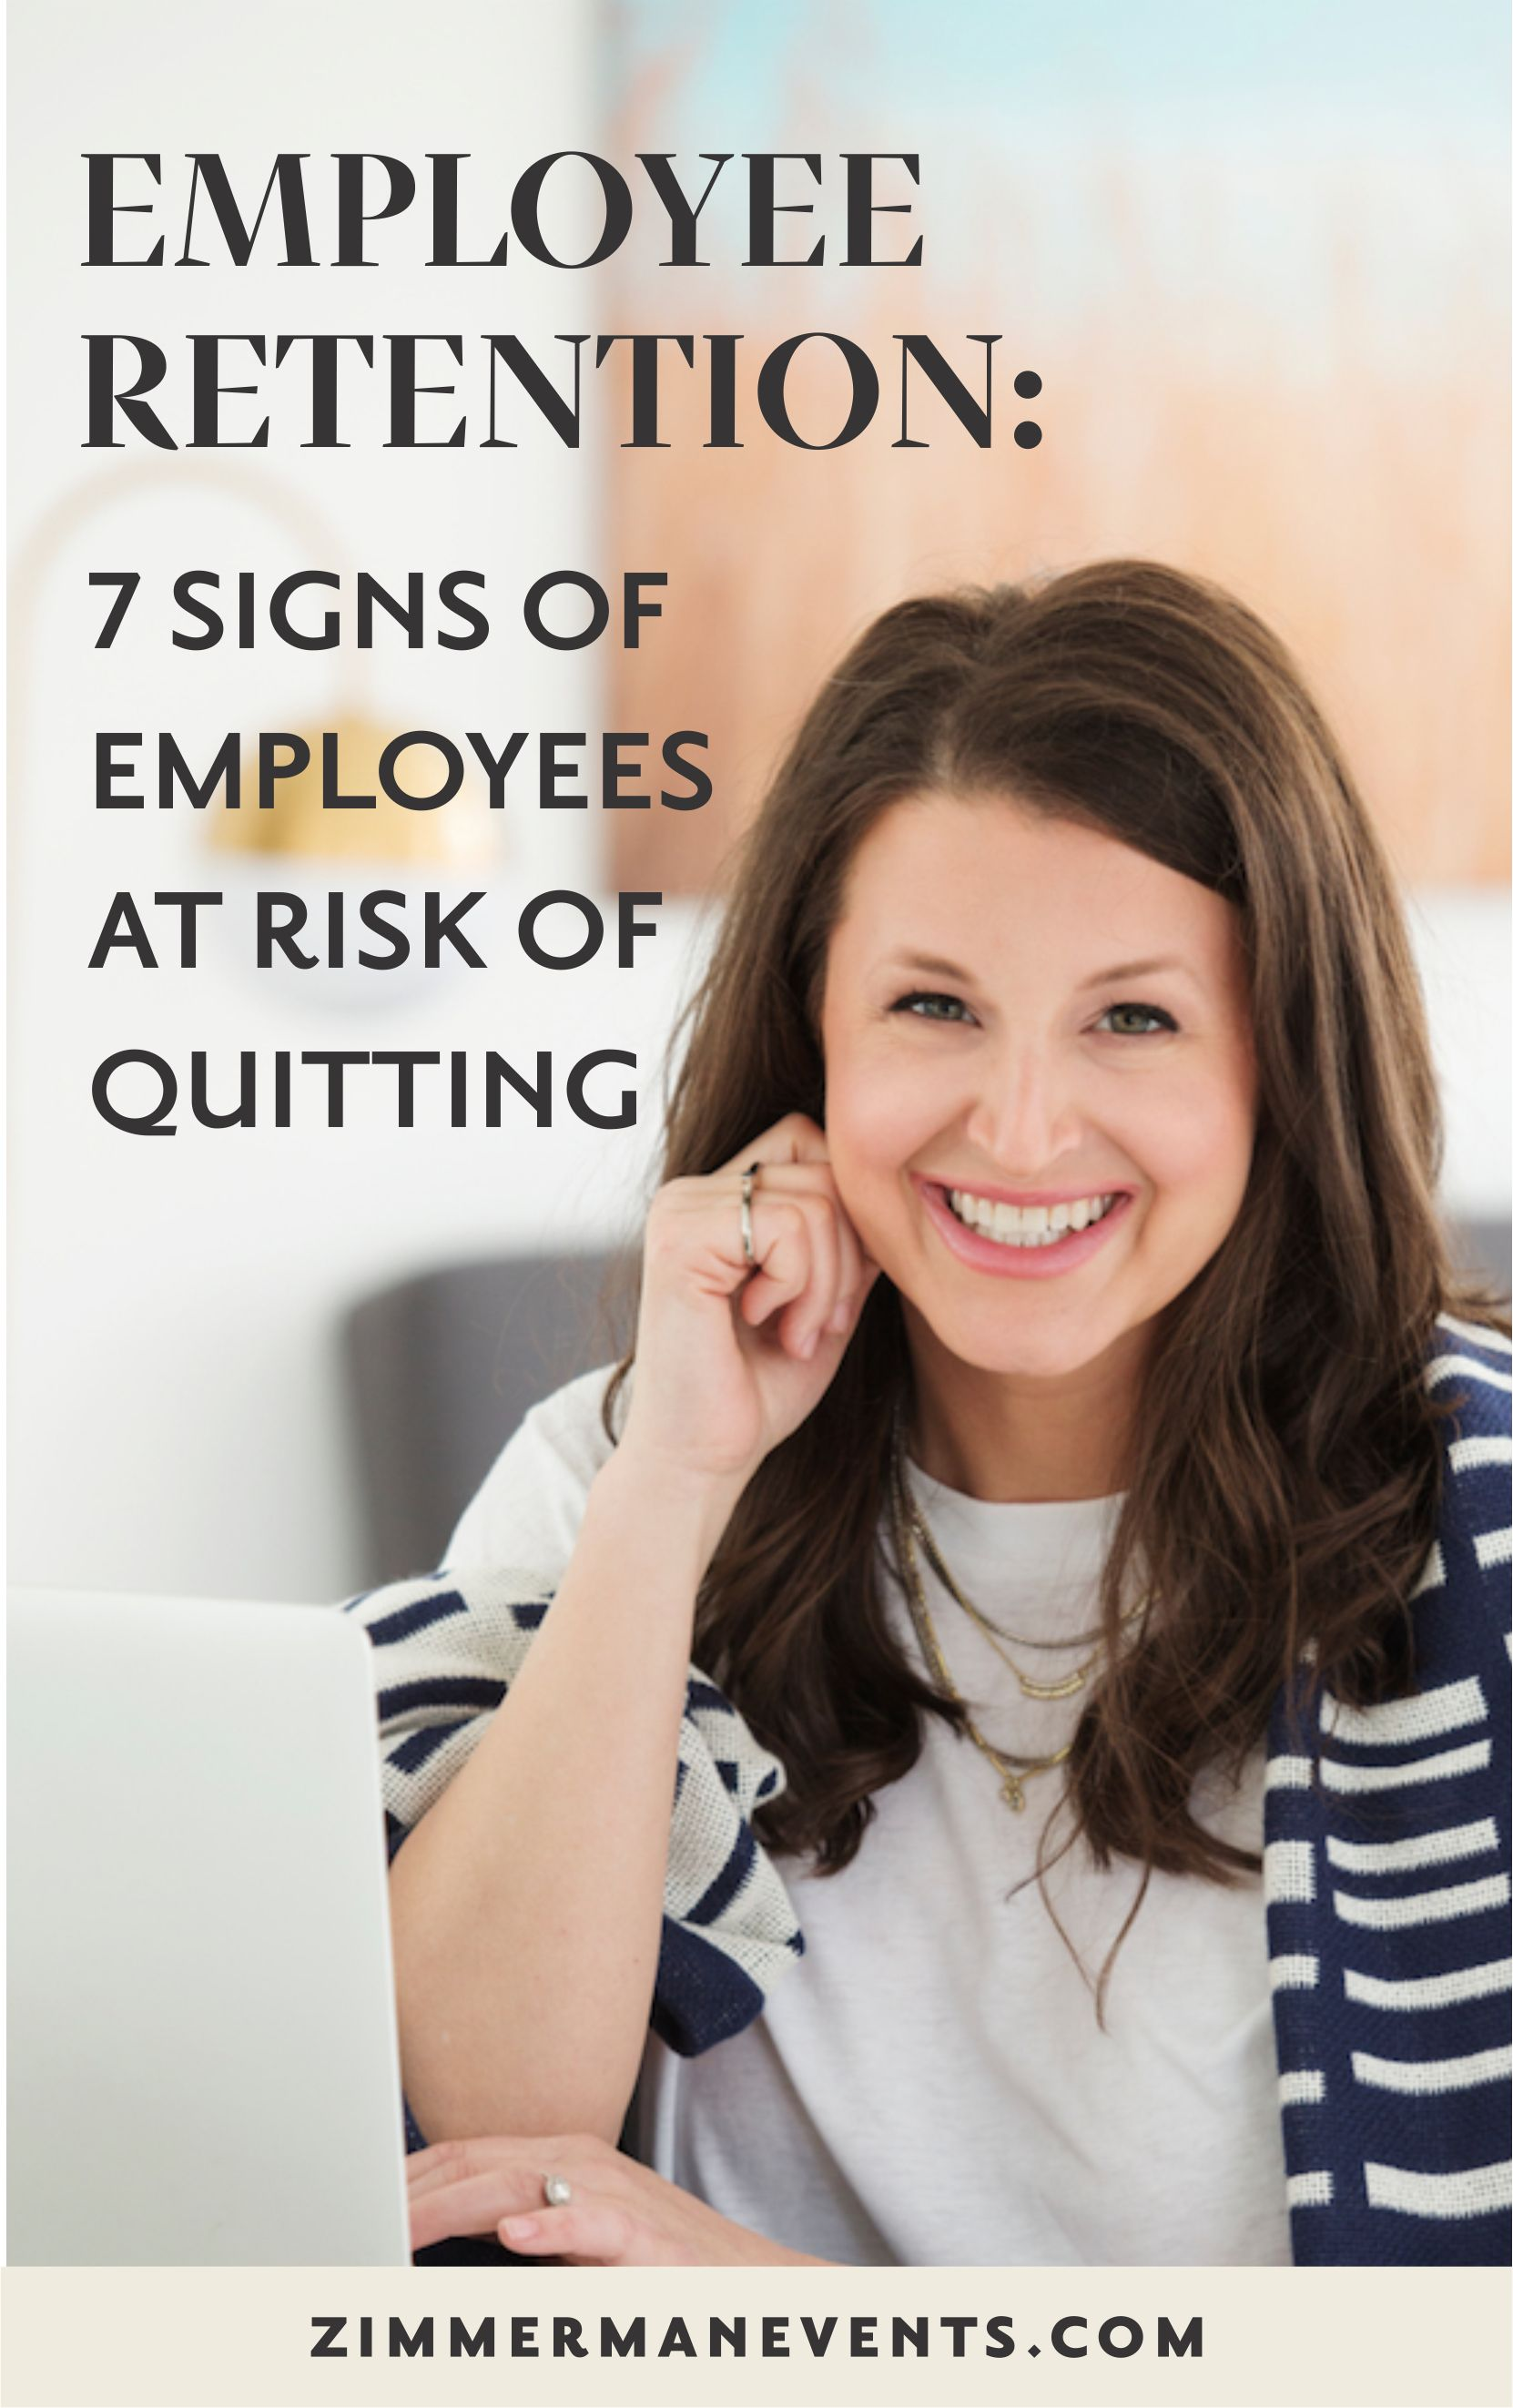 7 signs of employees at risk of quitting - feature on American Express